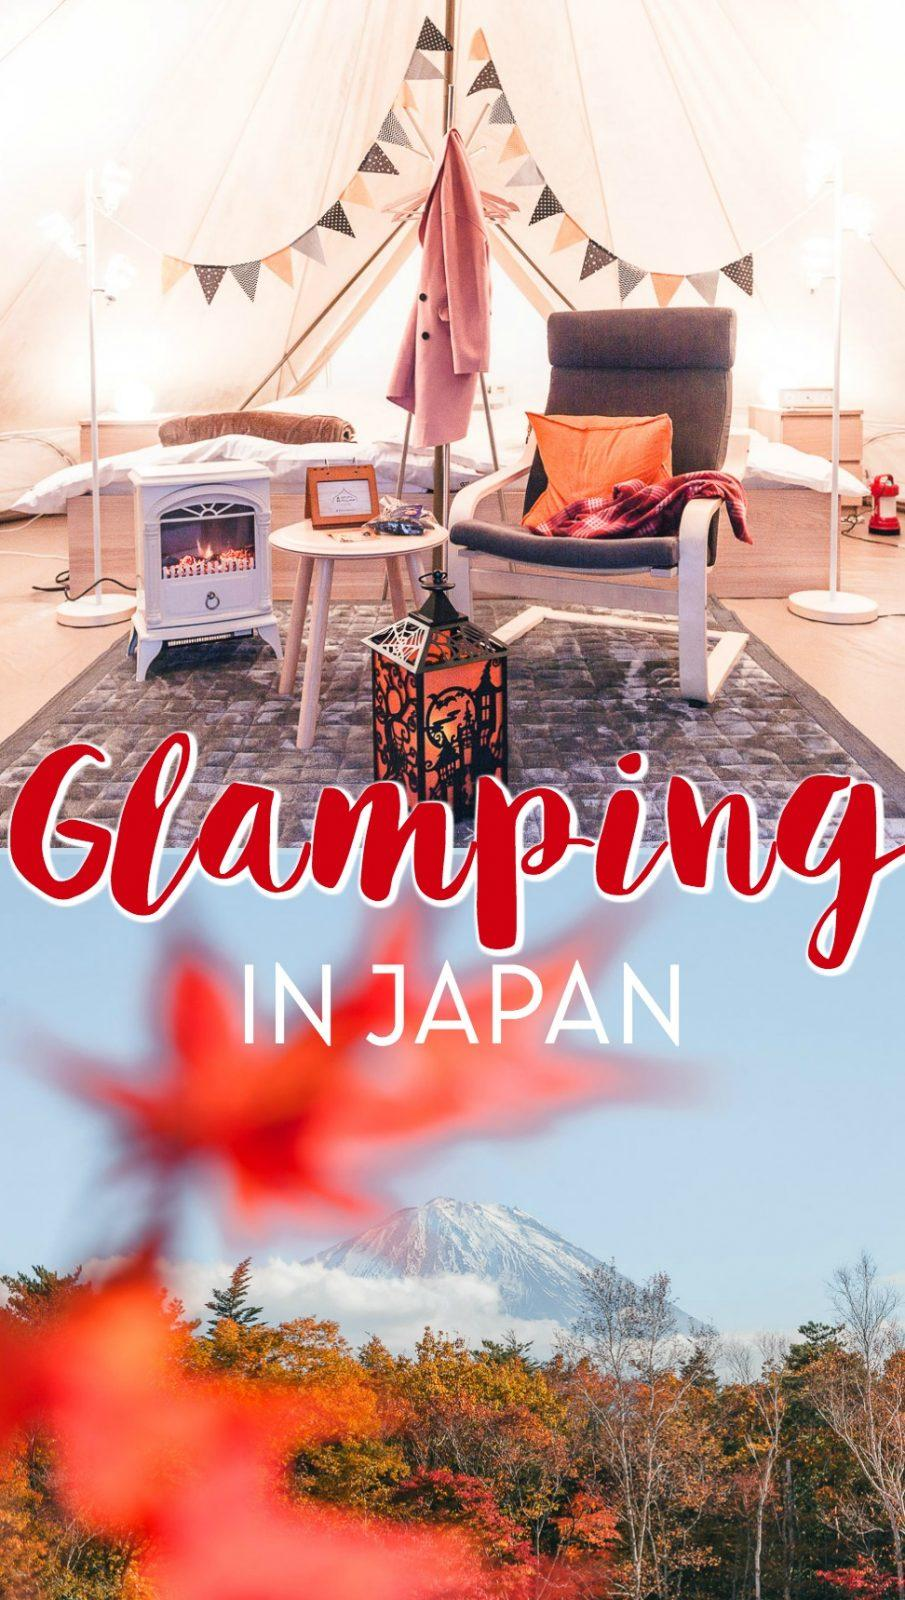 Camping in Japan: 3 Day Itinerary from Tokyo to Mount Fuji with Japanese glamping accommodation